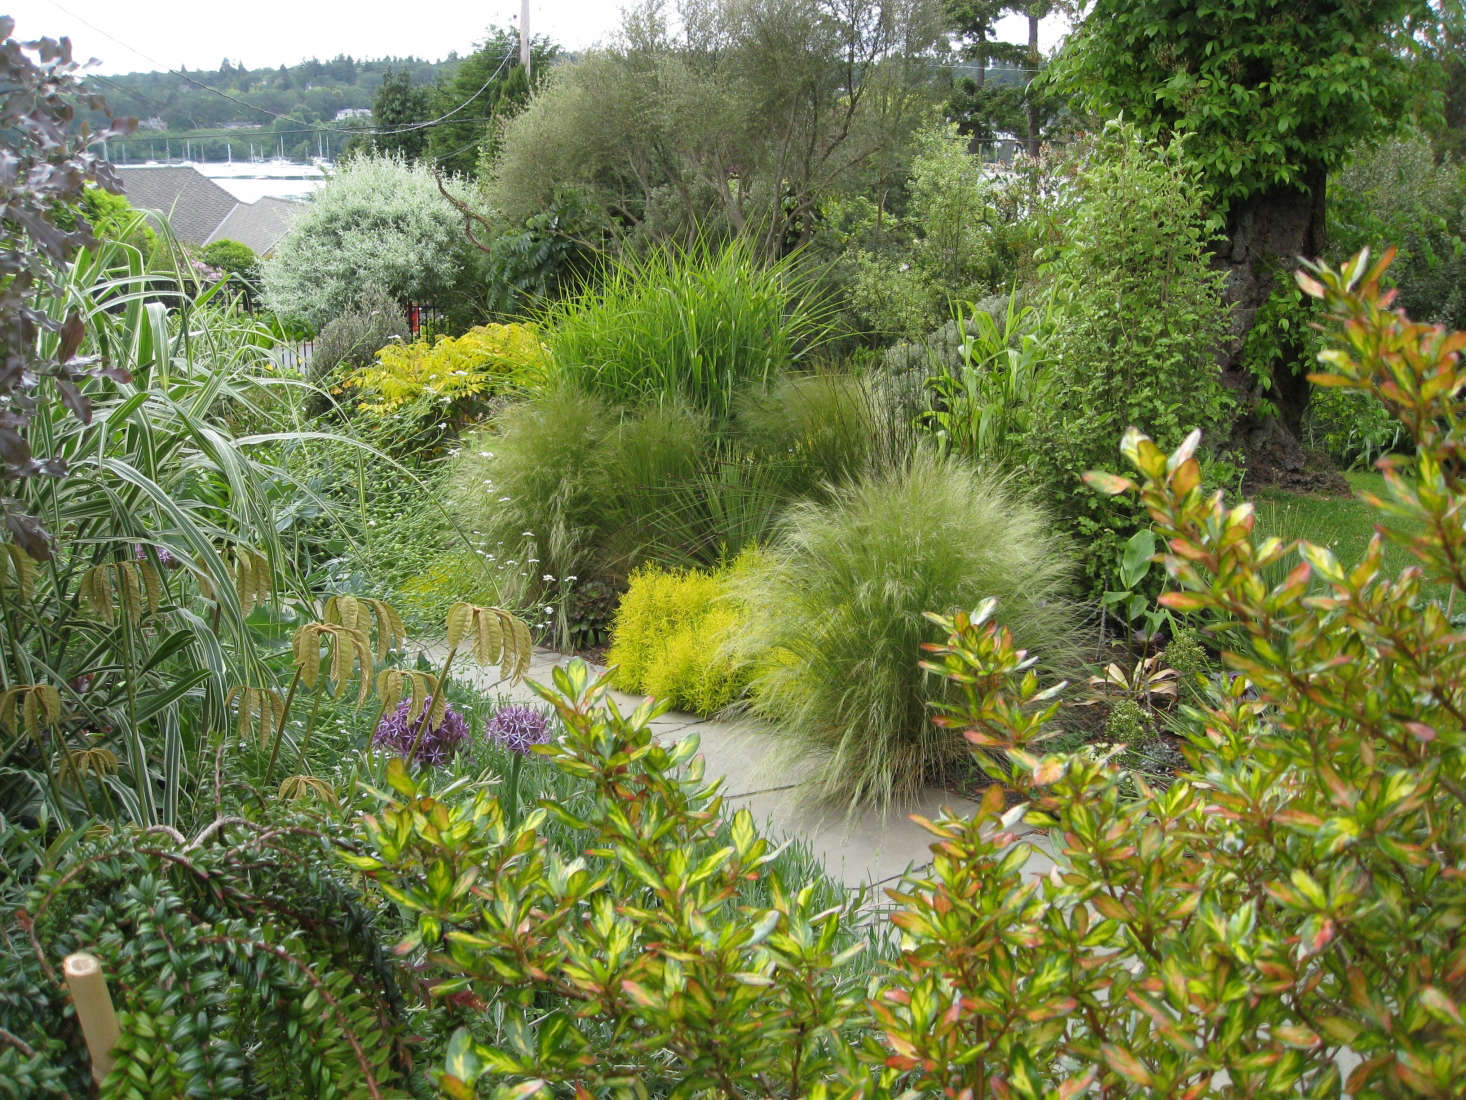 A collection of textural grasses lines the front path.Photograph by Graham Smyth.